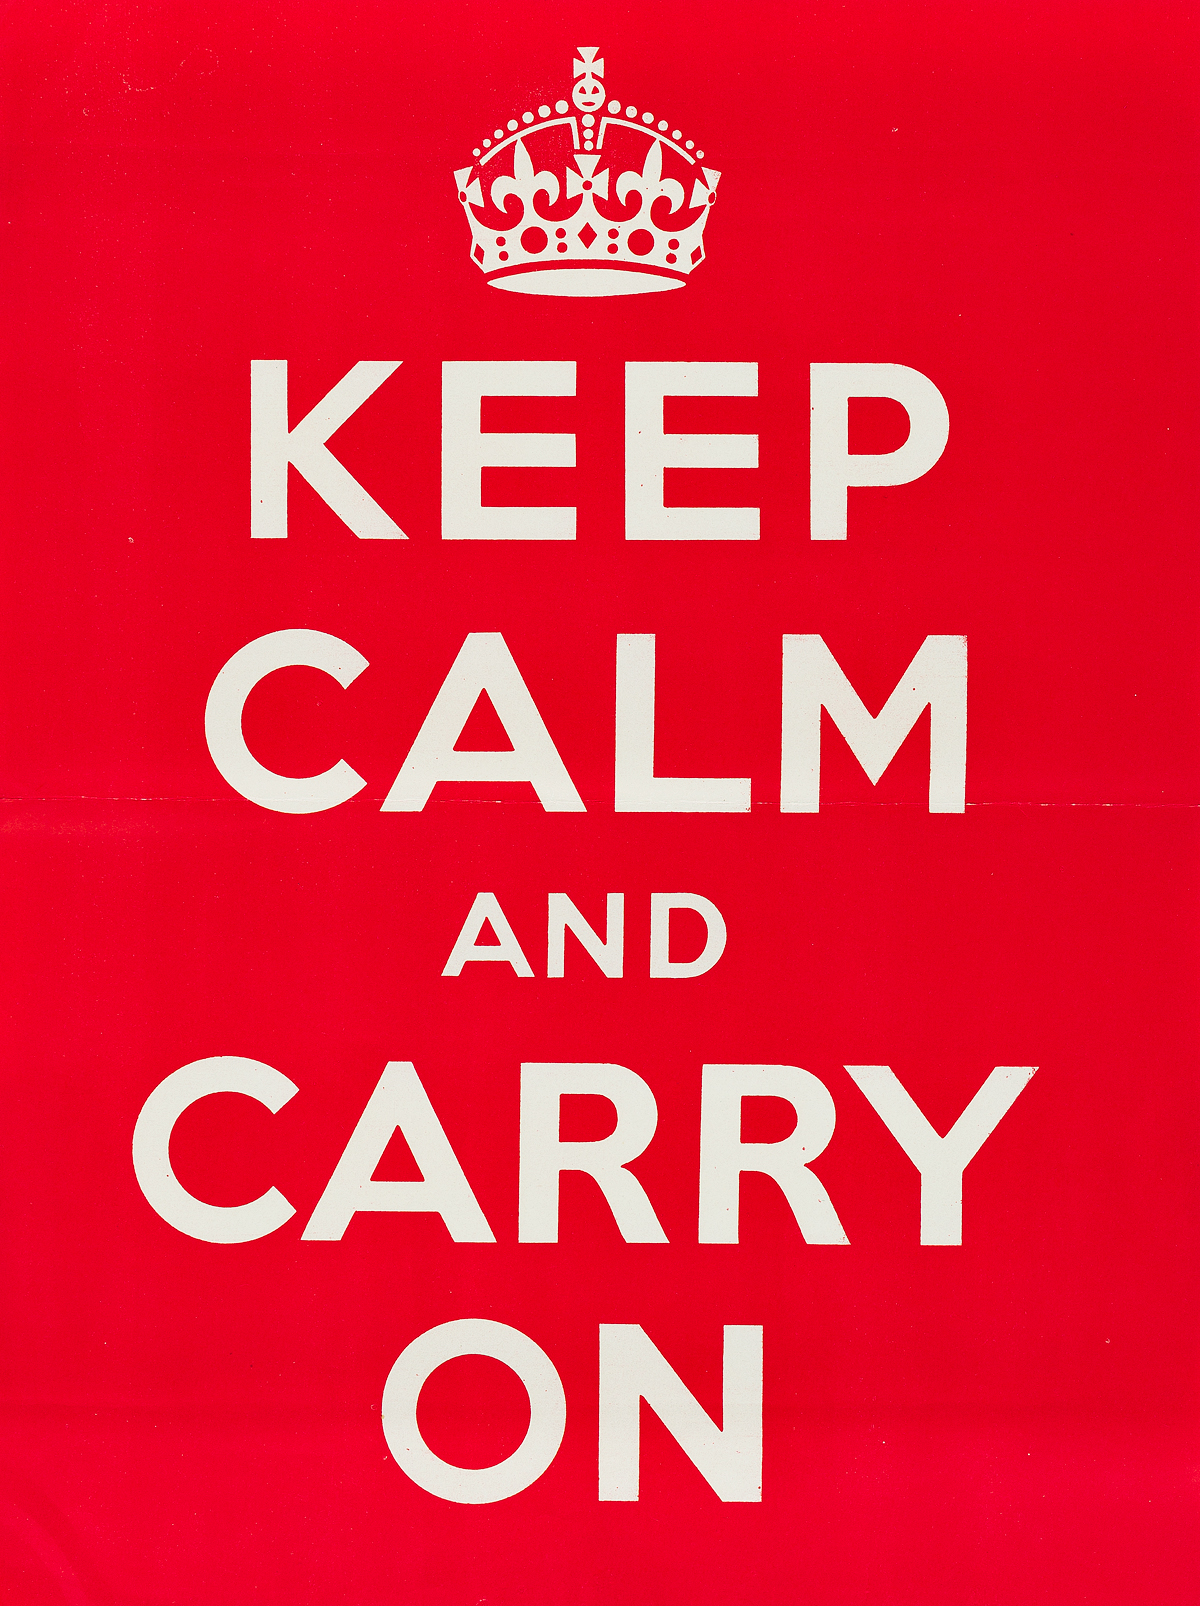 DESIGNER UNKNOWN. KEEP CALM AND CARRY ON. 1939. 20x15 inches, 50x38 cm.